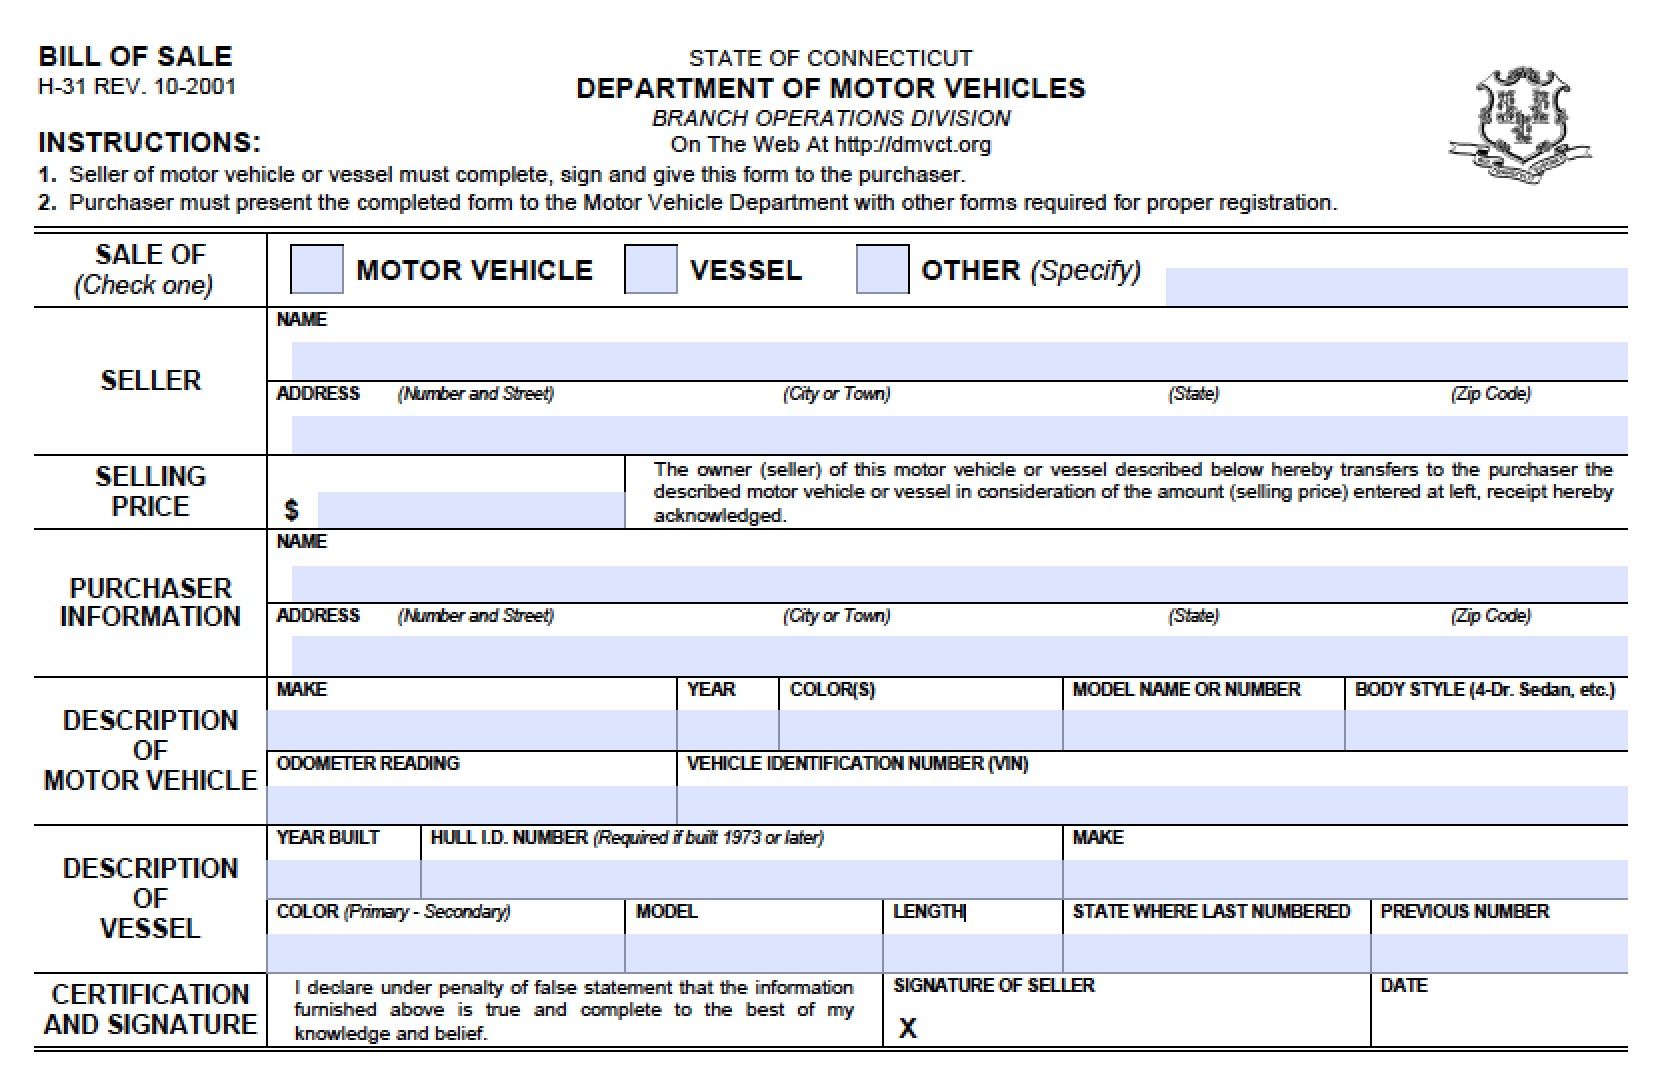 Free Connecticut Dmv (Vehicle/boat) Bill Of Sale (H-31) Form